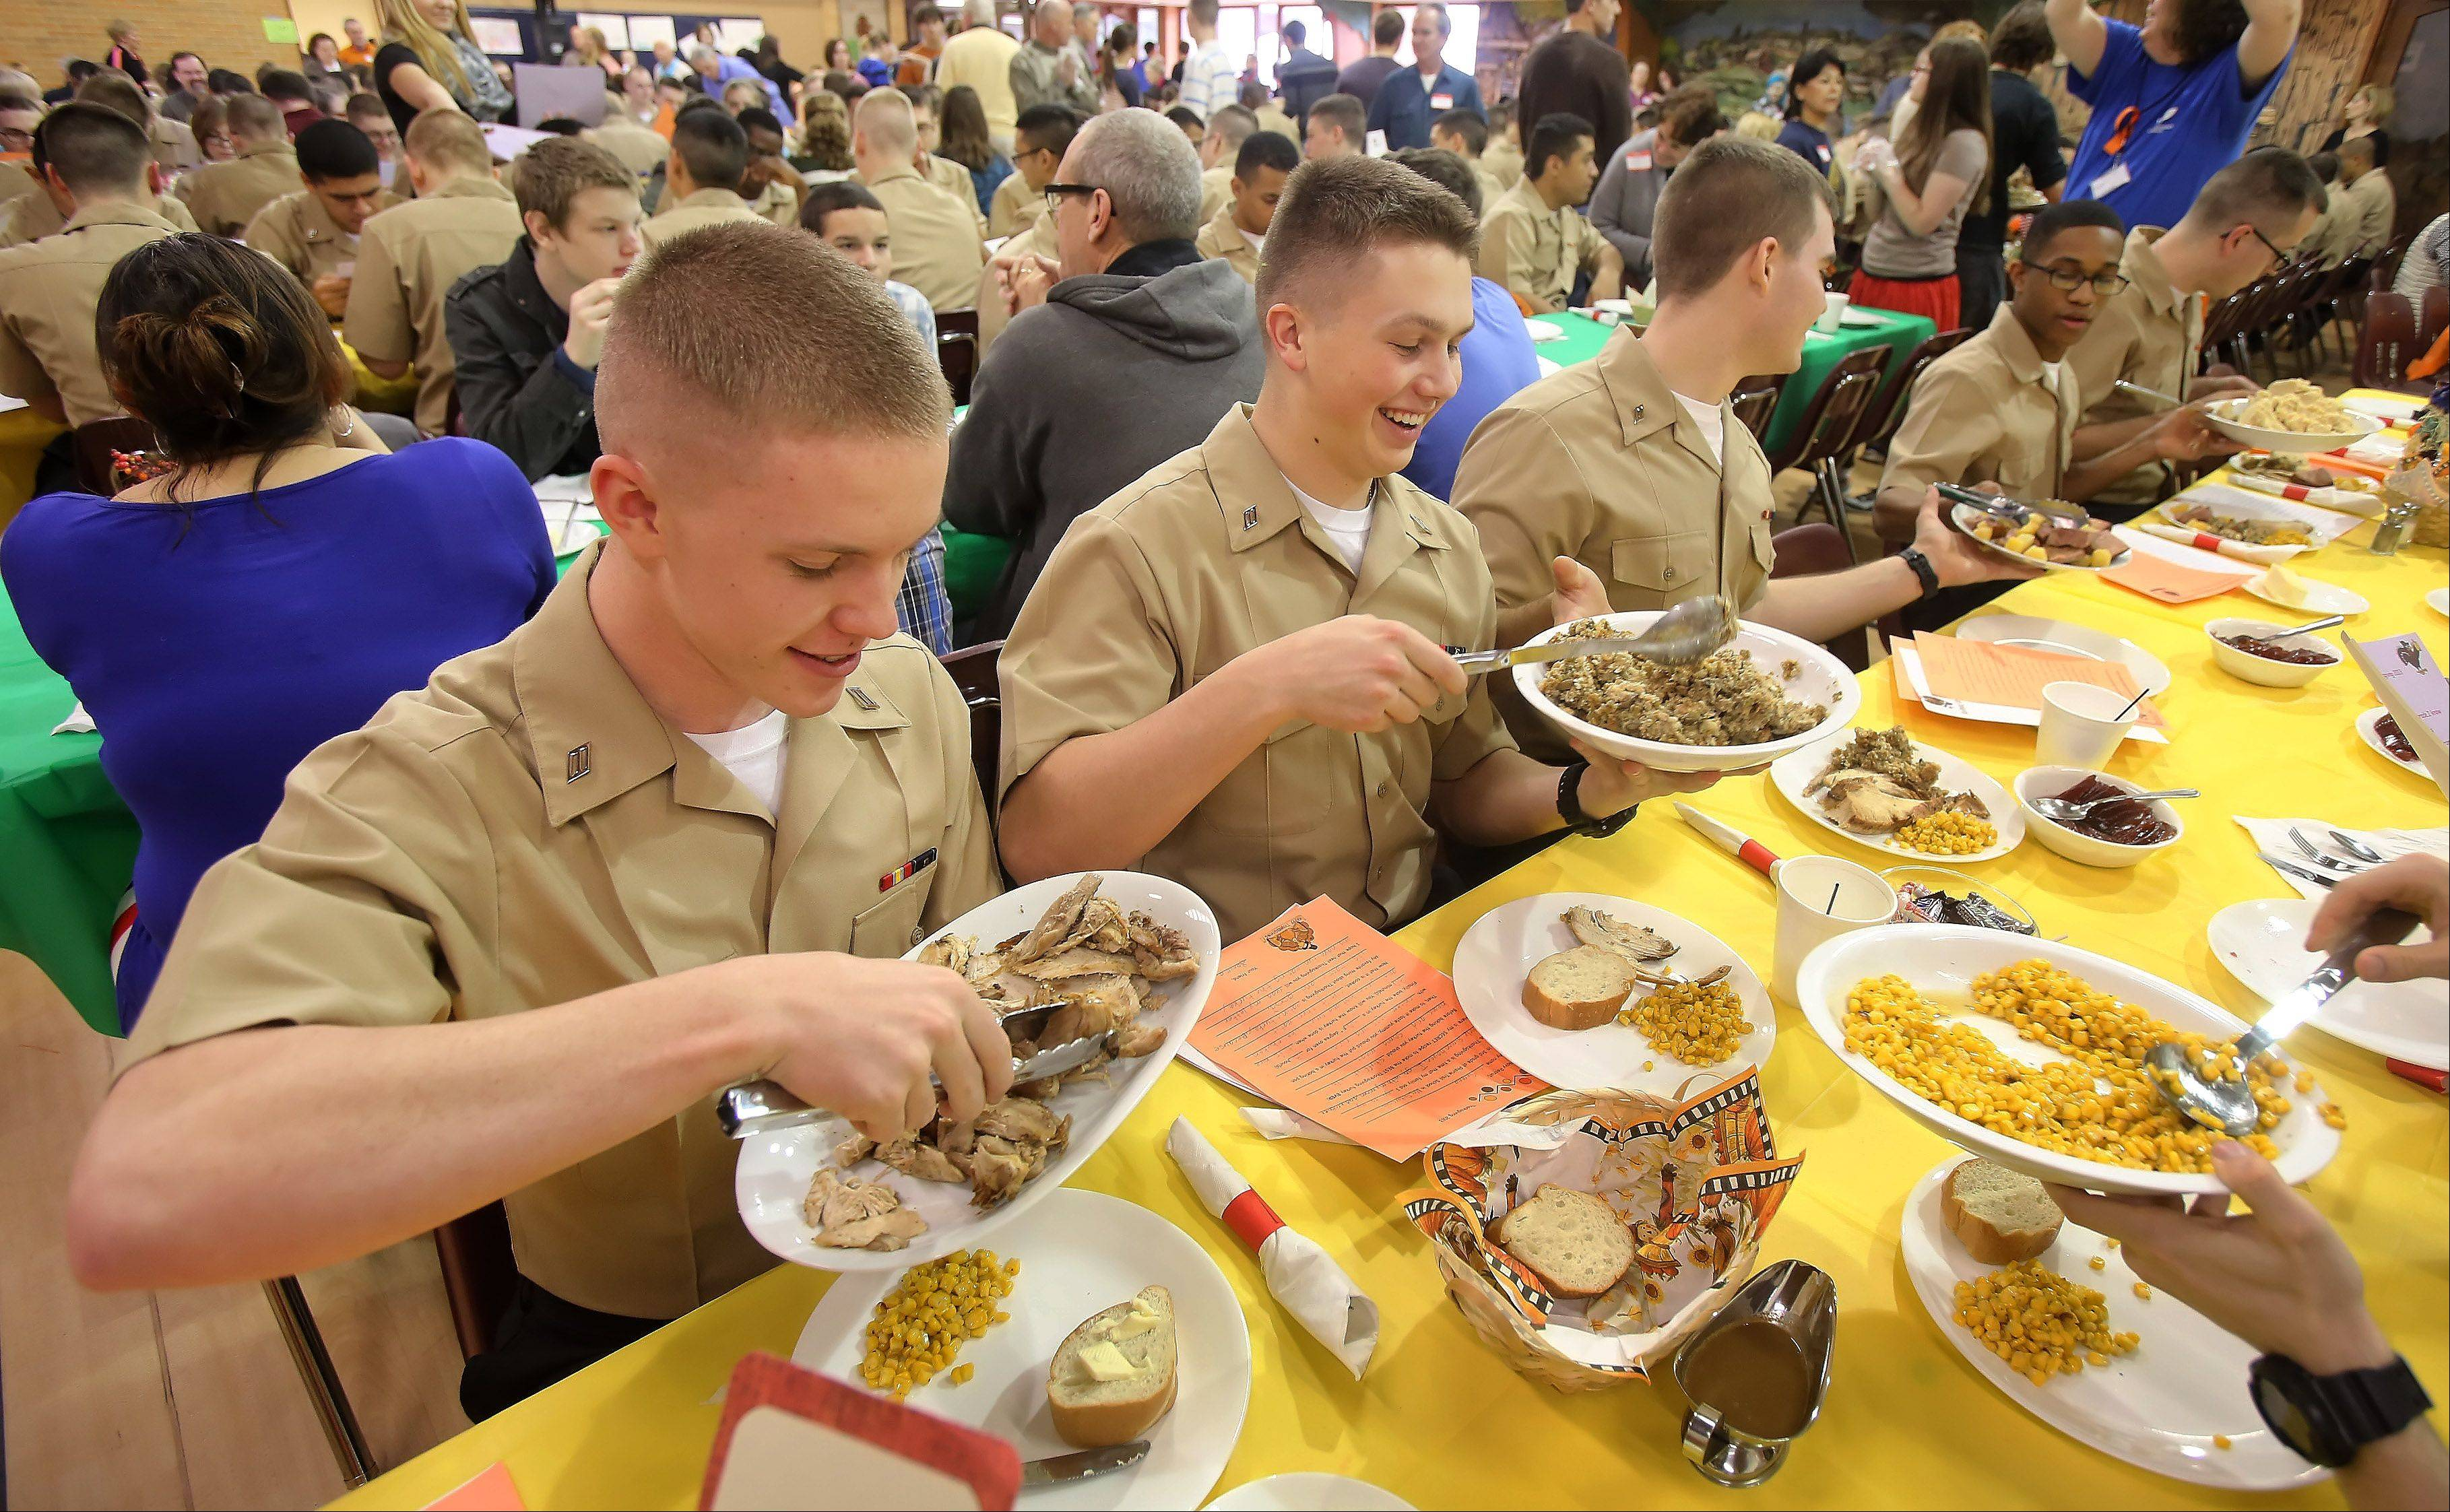 U.S. Navy Seaman Wade Eggert of Reno, Nevada, left, and Craig Bandy of Eagle, Idaho serve themselves during the annual free Thanksgiving dinner at the Gurnee Community Church.